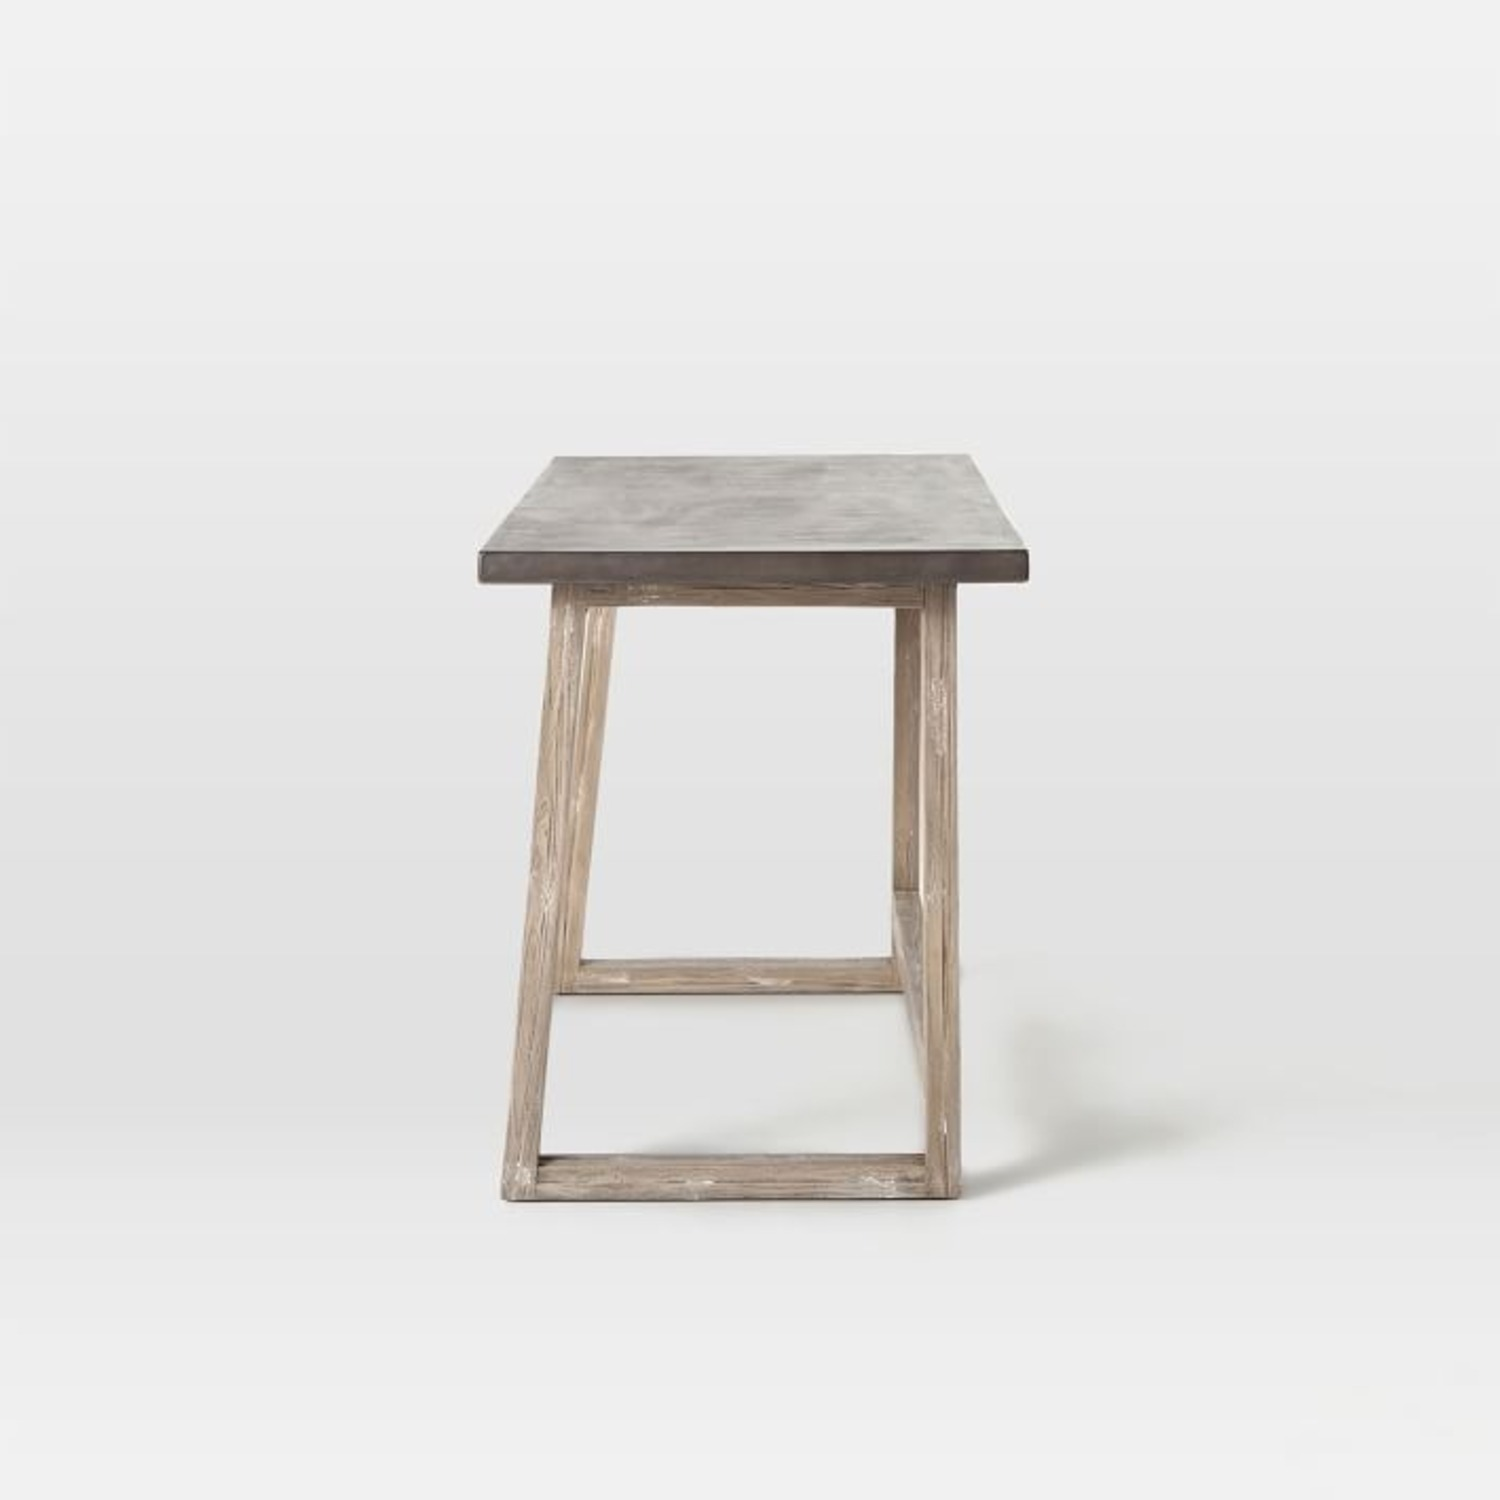 West Elm Concrete-Topped Mixed Wood Desk - image-3